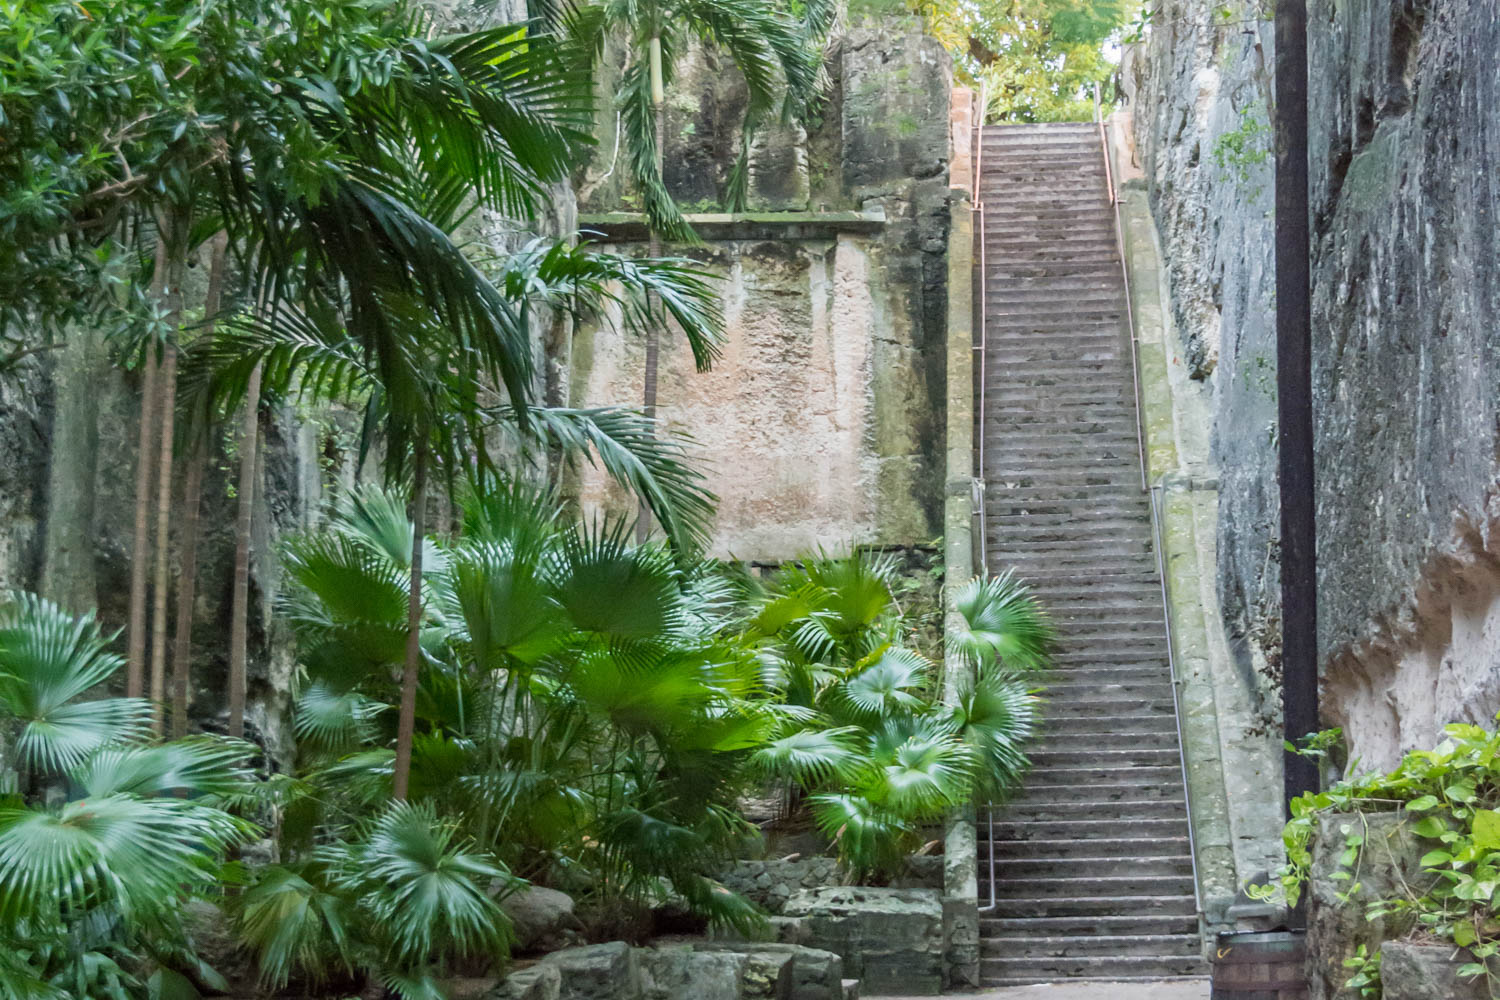 The Queen's Staircase is just one of many things to do in Nassau on a cruise. You have plenty of time and places to visit in Bahamas. A tourist favorite of things to do in Nassau Bahamas.